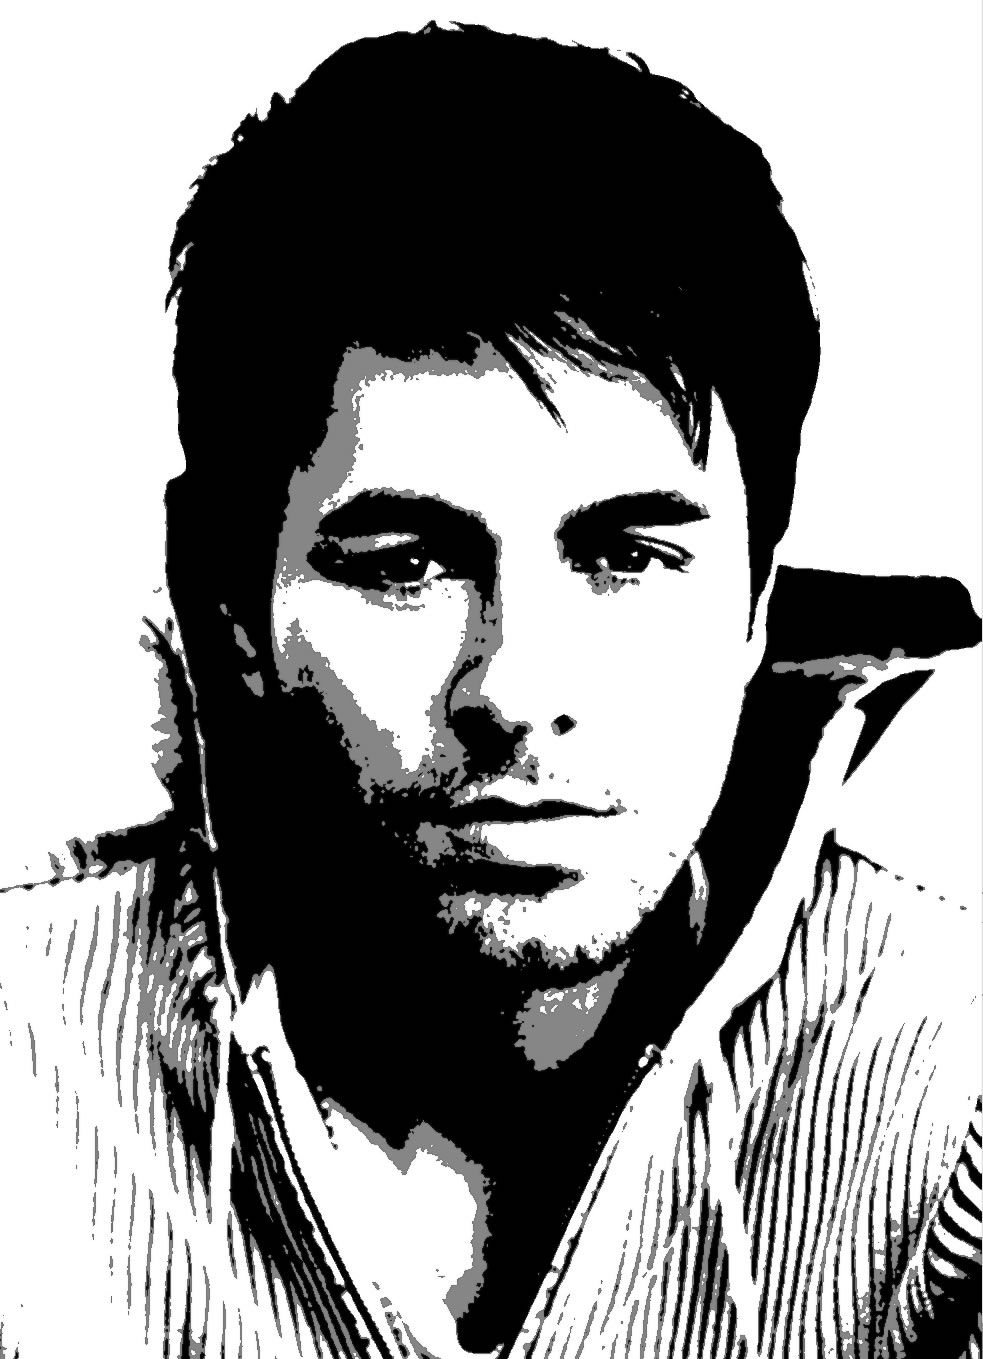 enrique iglesias stencil 983 1359 party inspirations pinterest silhouettes. Black Bedroom Furniture Sets. Home Design Ideas